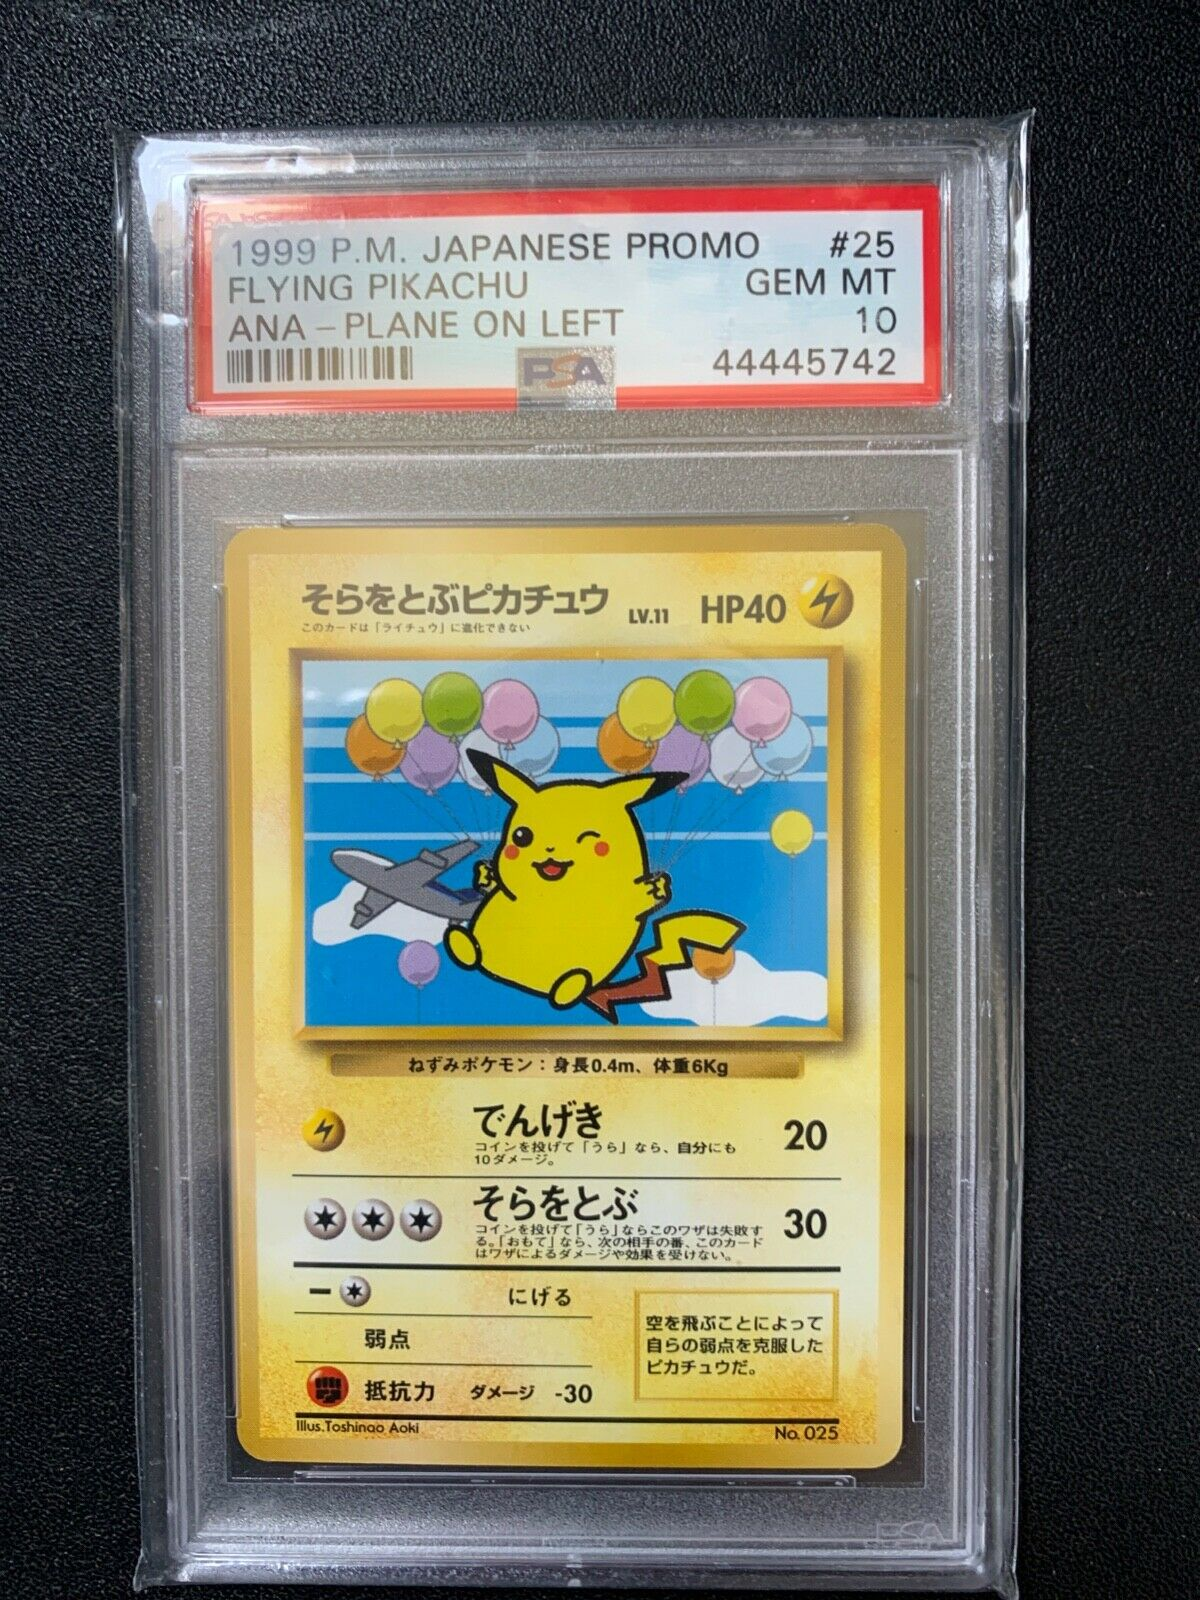 PSA 10 Pokemon Pikachu ANA Plane On Left PROMO